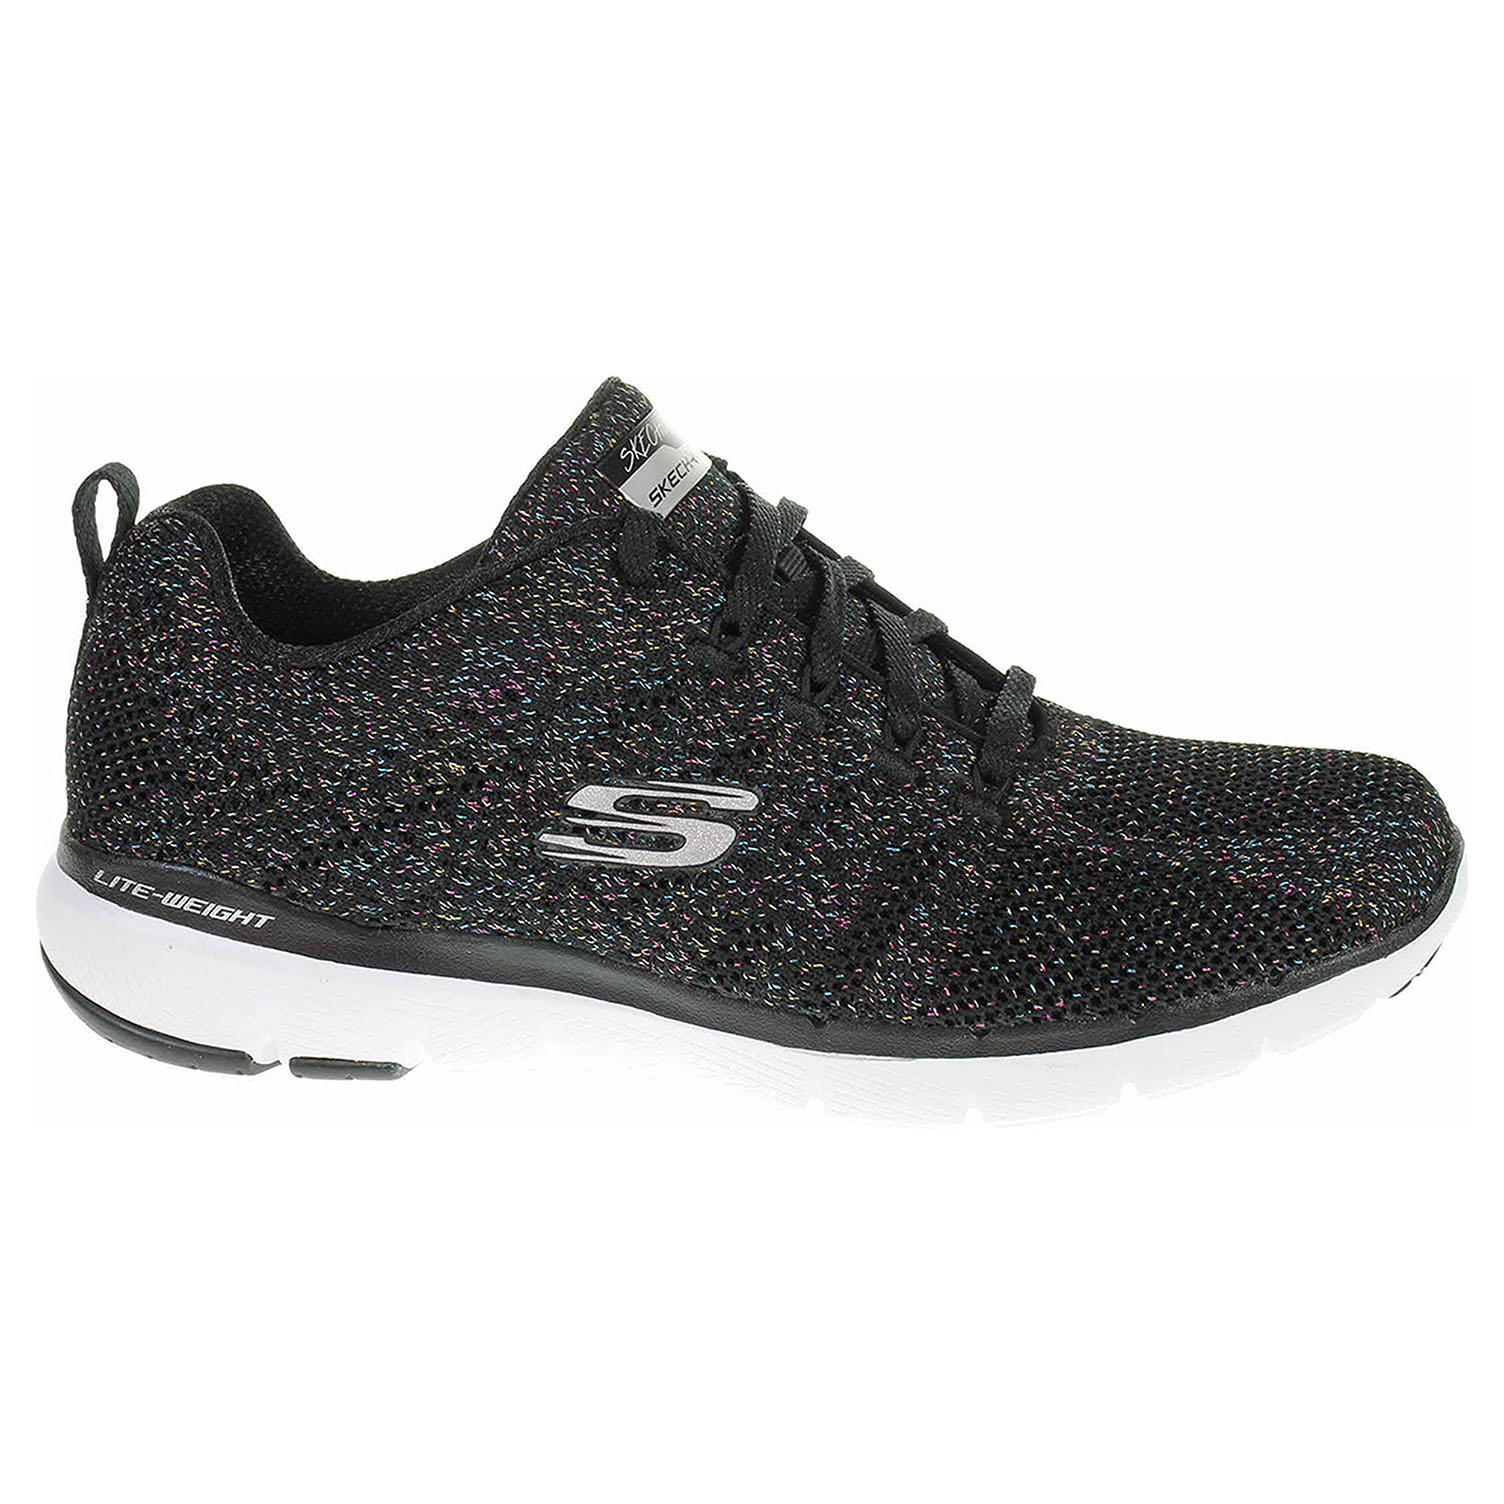 Skechers Flex Appeal 3.0 - Metal Works black-multi 13078 BKMT 39